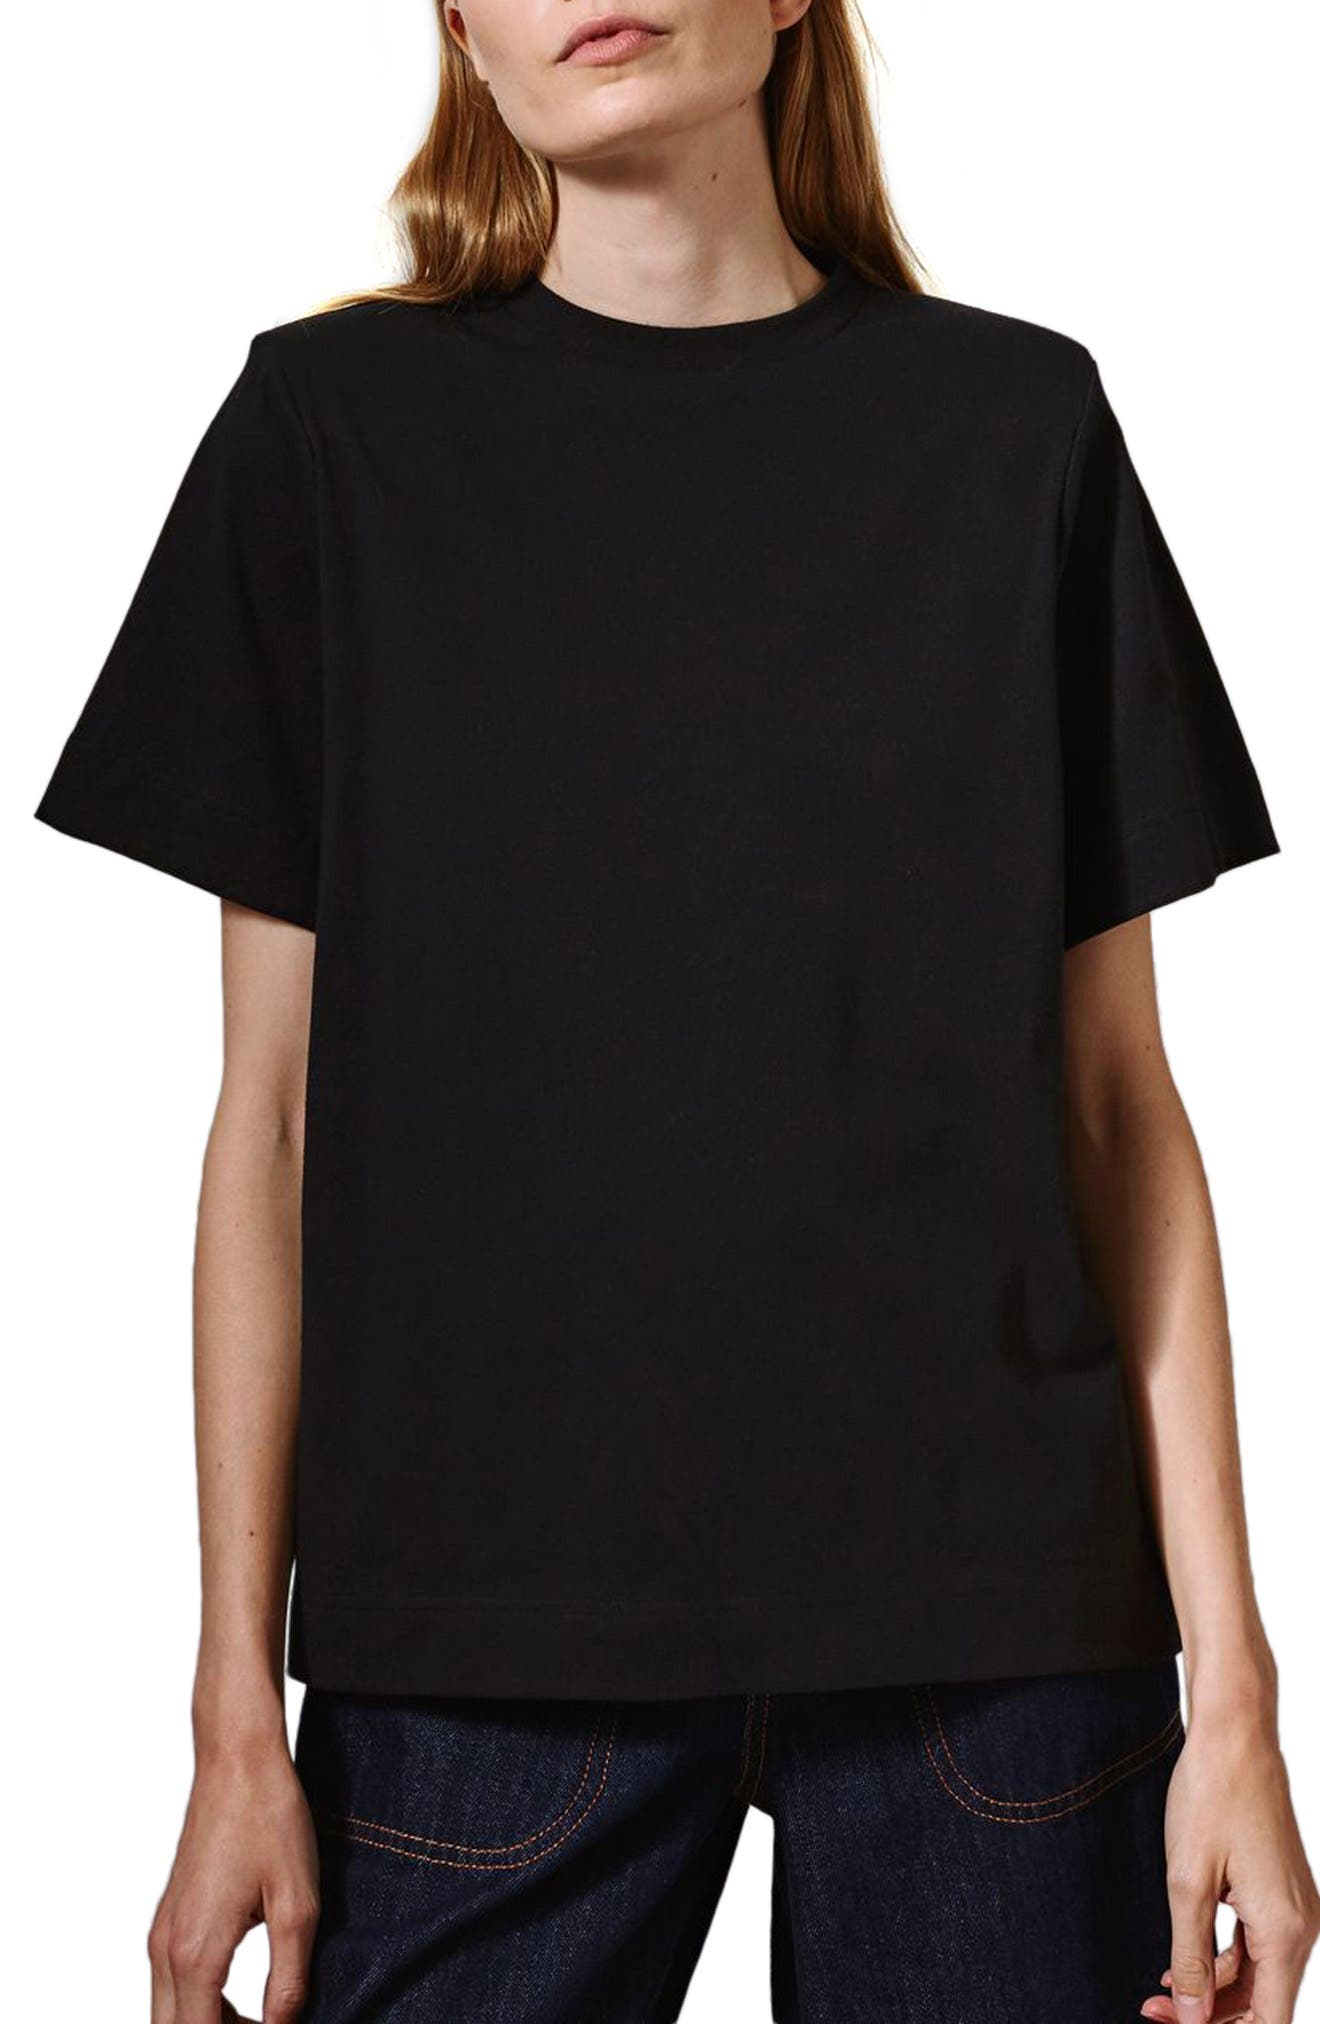 Topshop Boutique Power Shoulder Tee